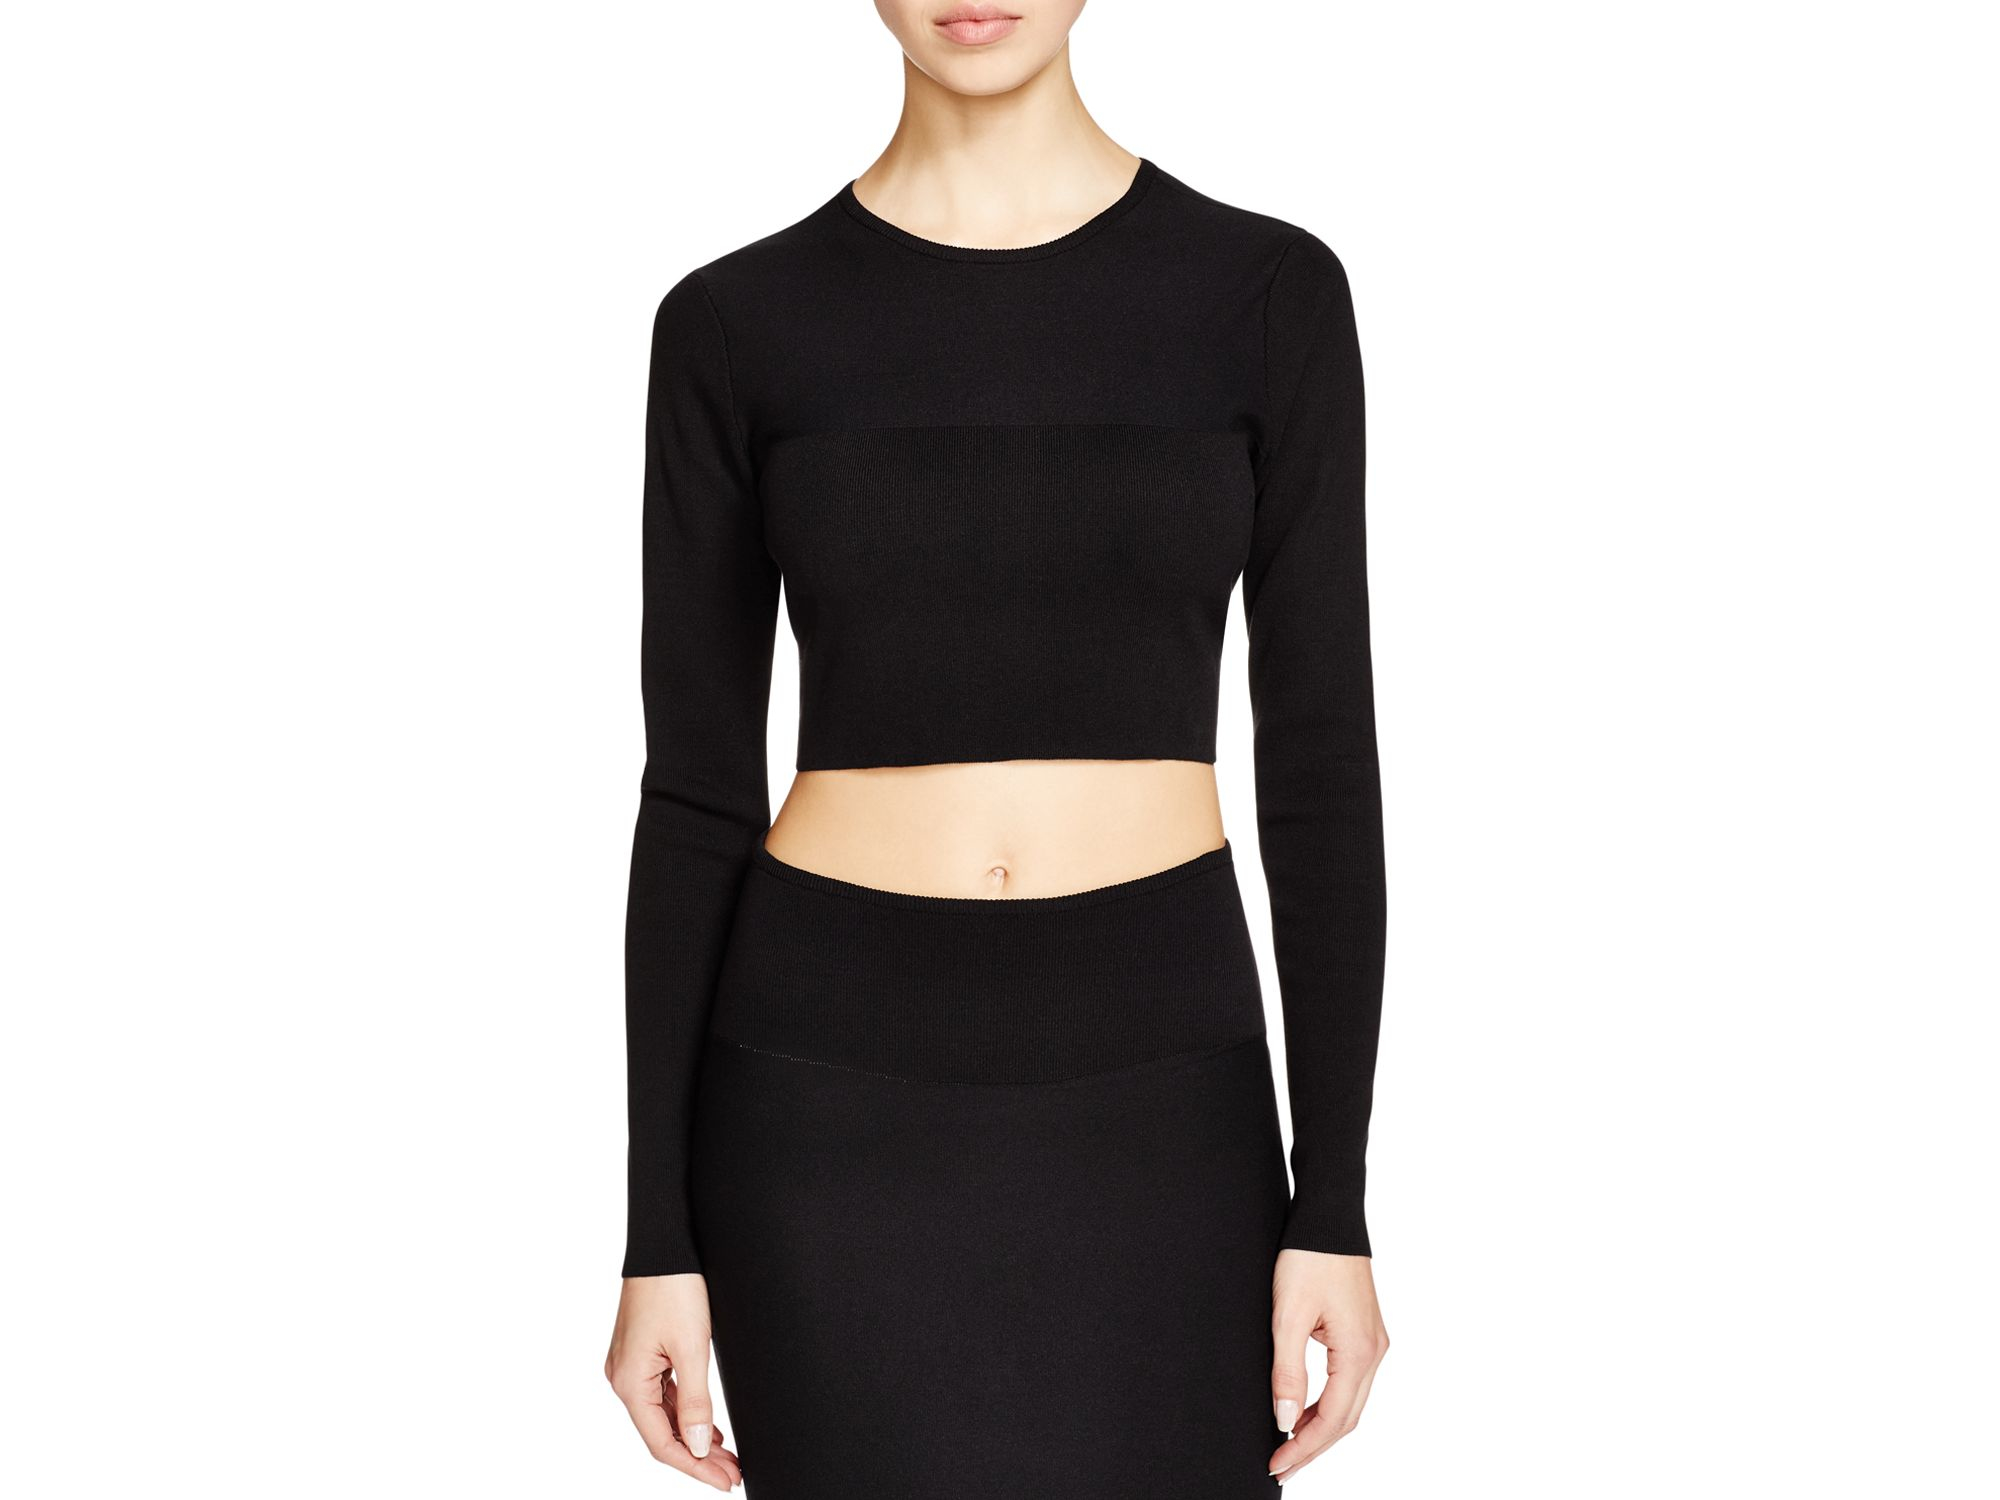 Kendall + kylie Kendall + Kylie Crop Knit Sweater in Black | Lyst